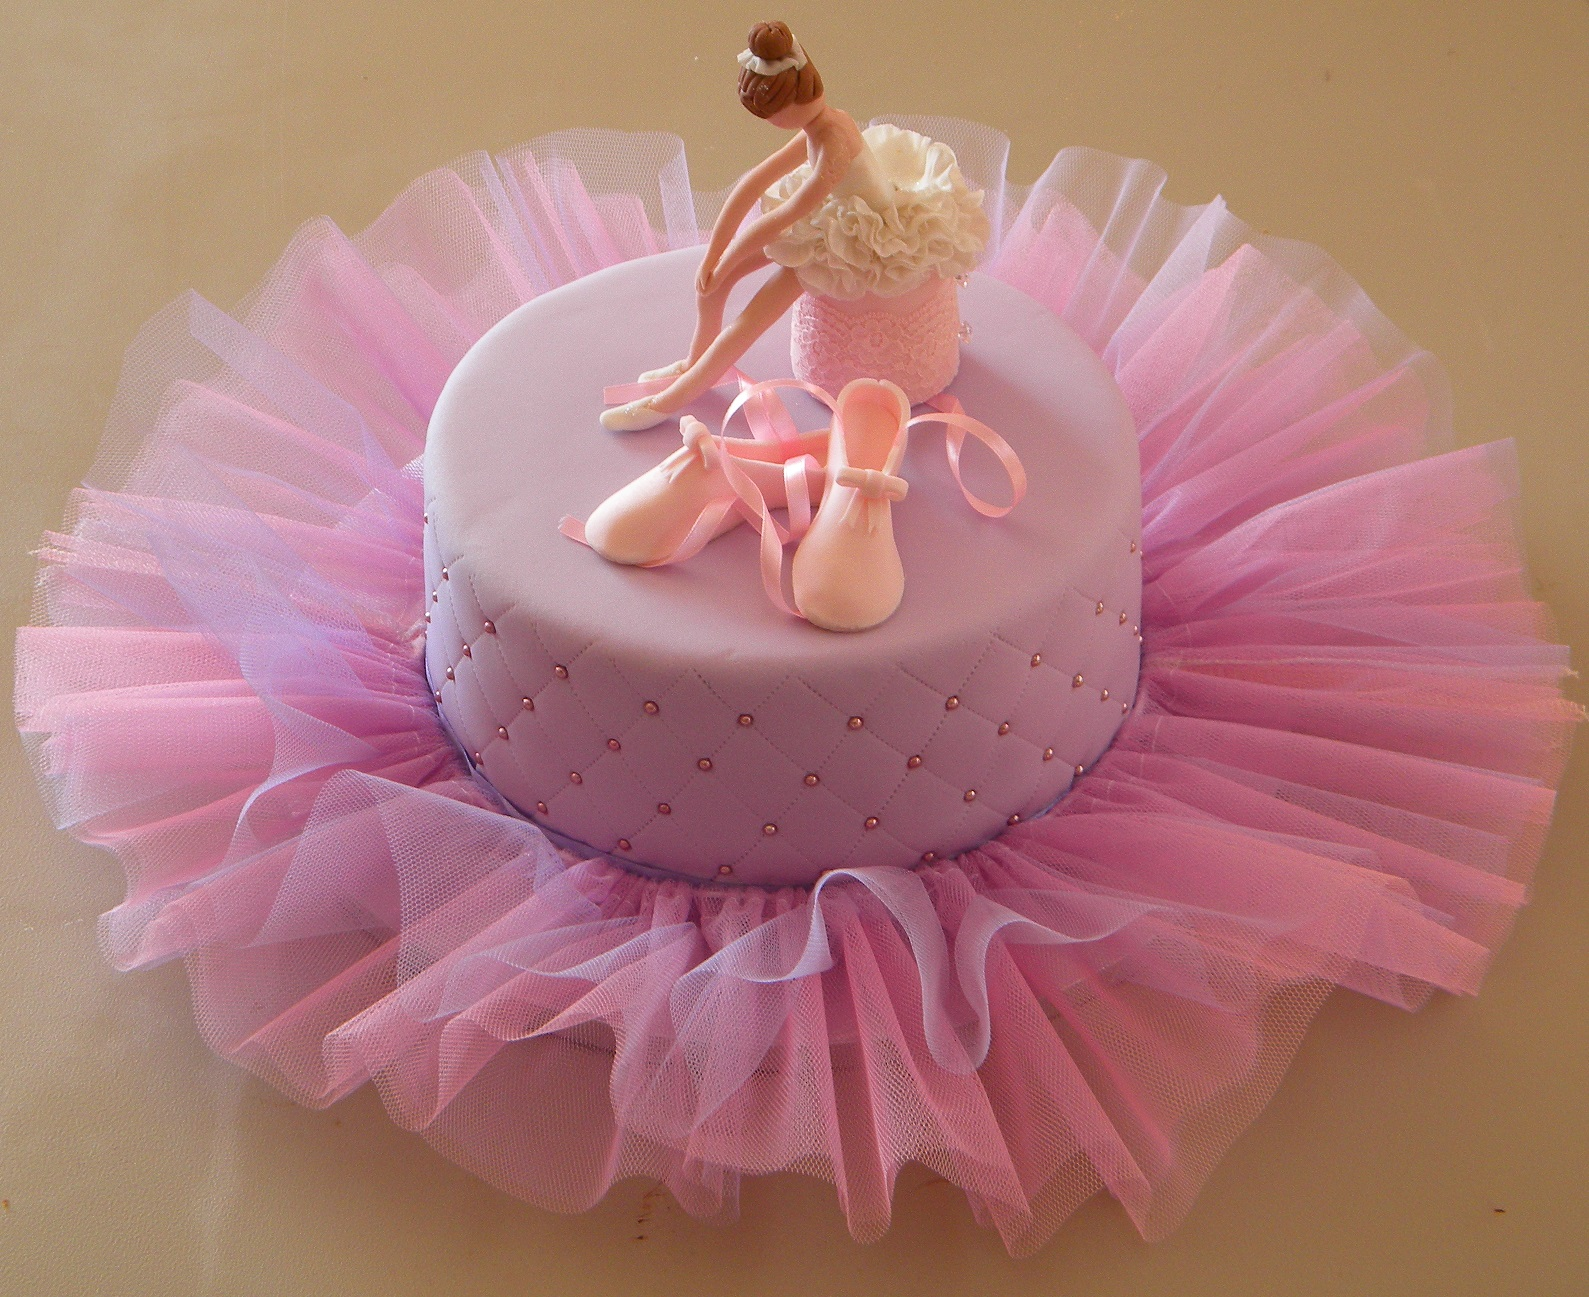 Cake Decorations Ballet Shoes : BITE ME CUPCAKES and WRAPPERS: June 2015